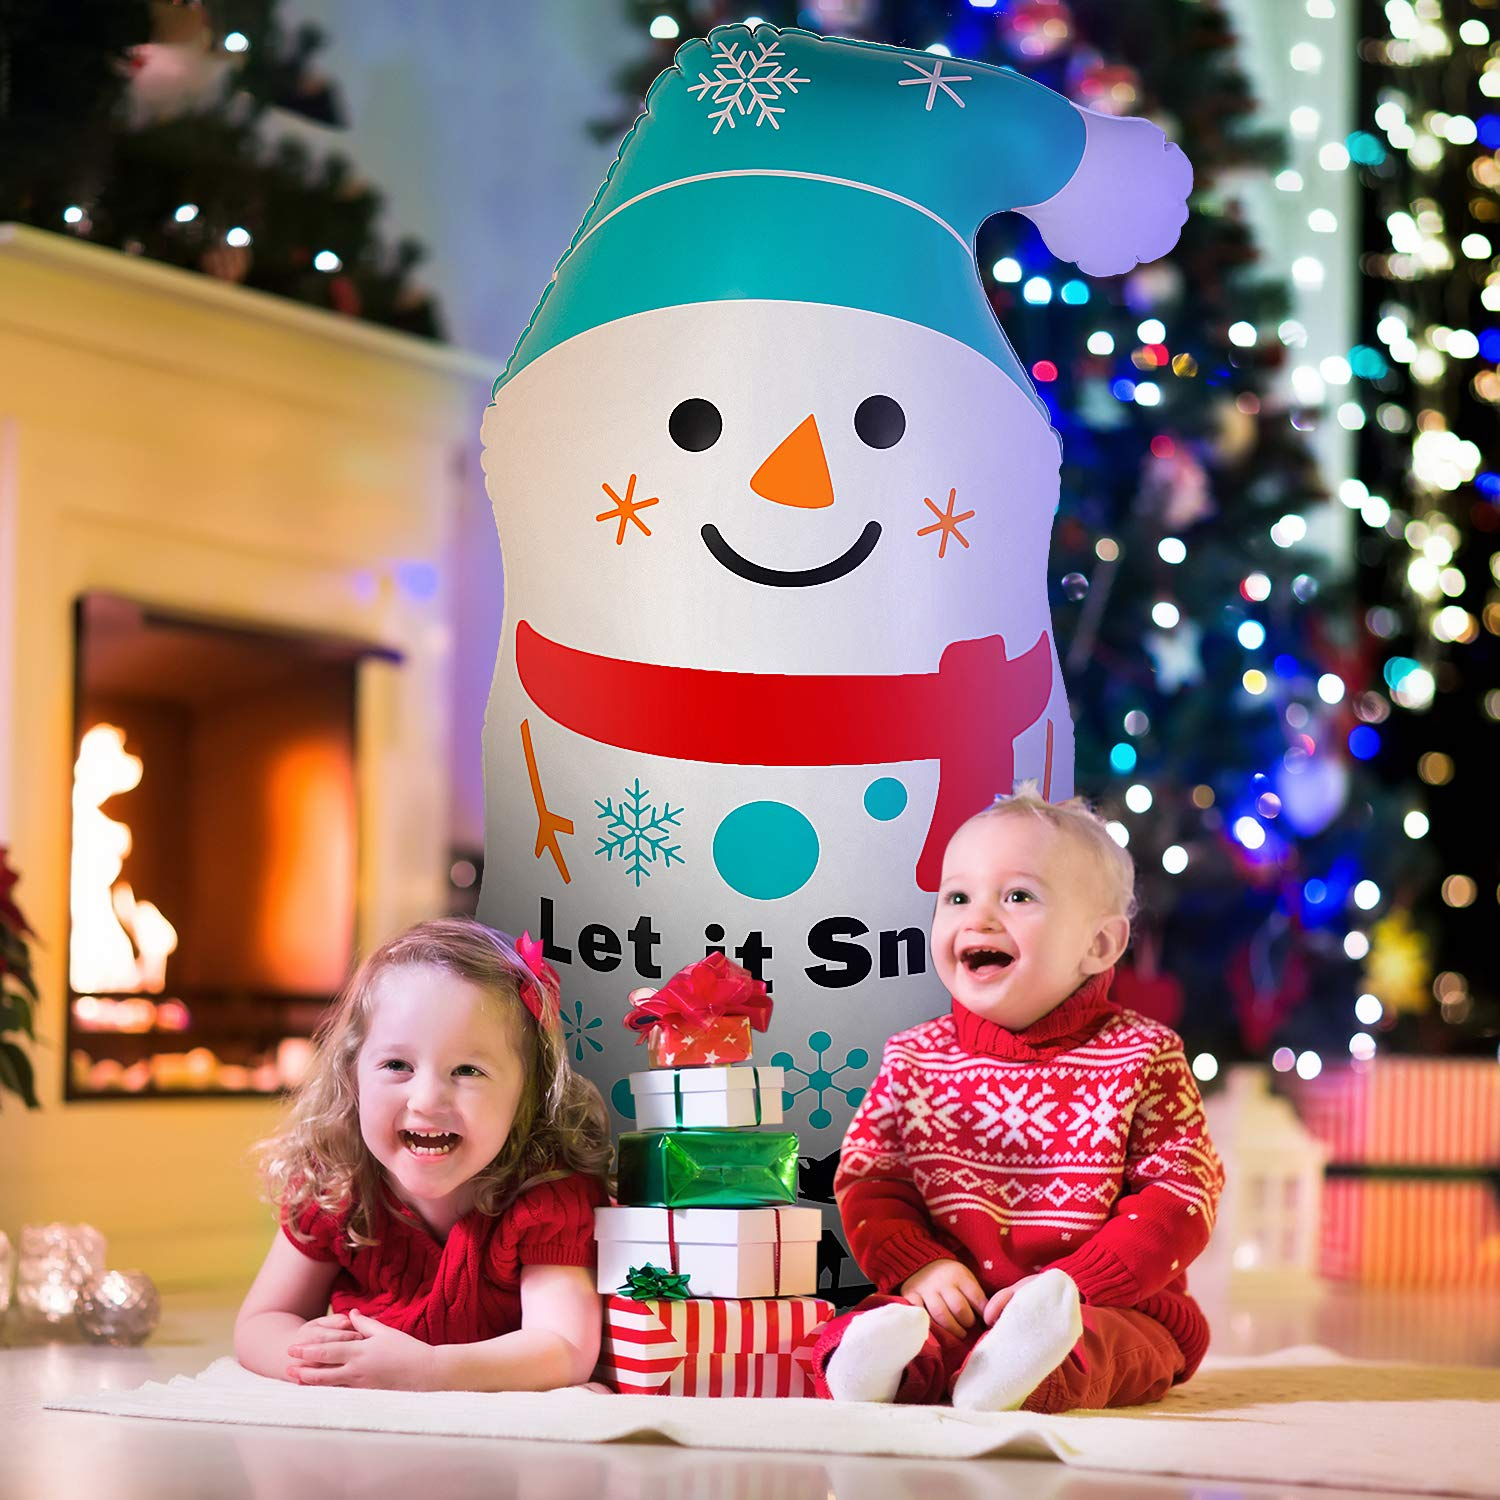 Aywewii Christmas Inflatable Snowman Tumbler, Inflatables Christmas Decorations, 3.8 FT Inflatable Snowman for Christmas and New Year Home Indoor Outdoor Holiday Yard Decorations